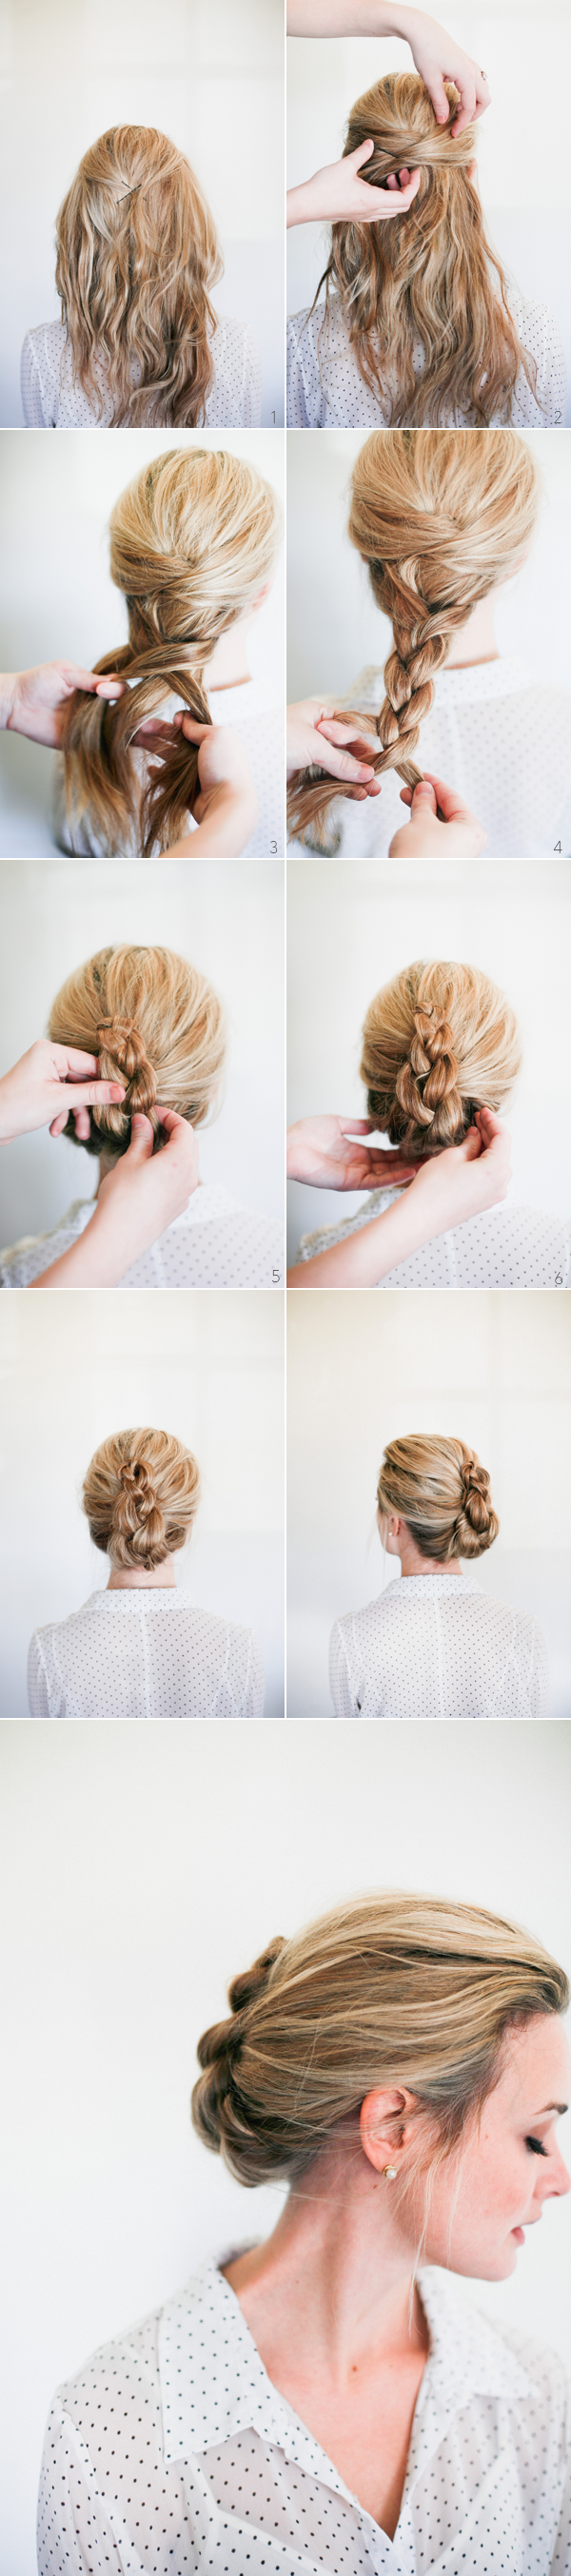 conair braid maker instructions